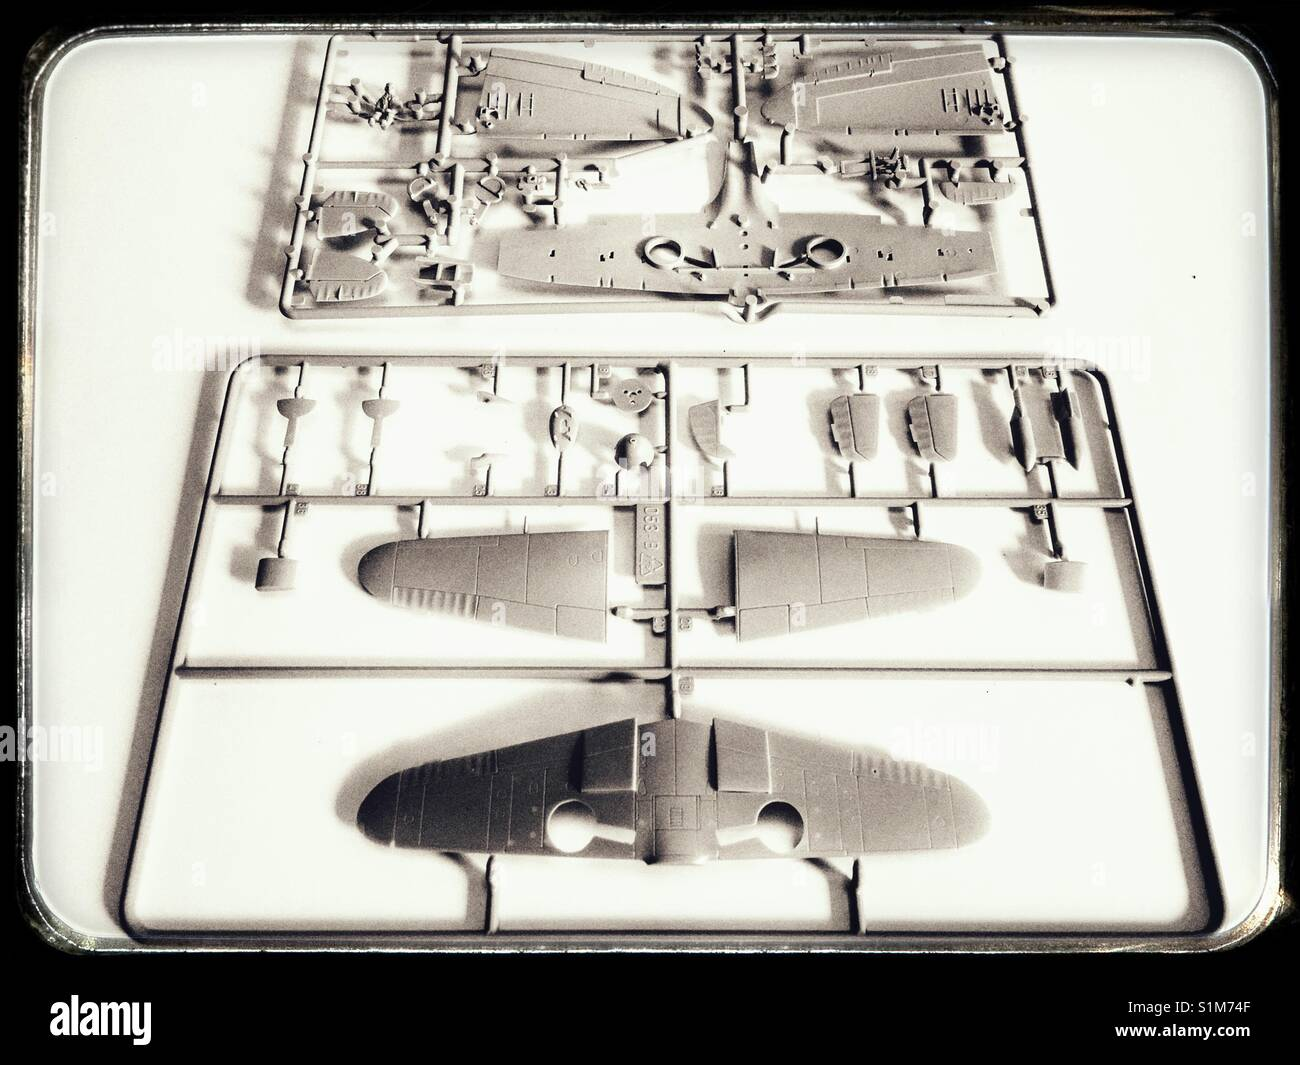 Aircraft Parts Stock Photos & Aircraft Parts Stock Images - Alamy